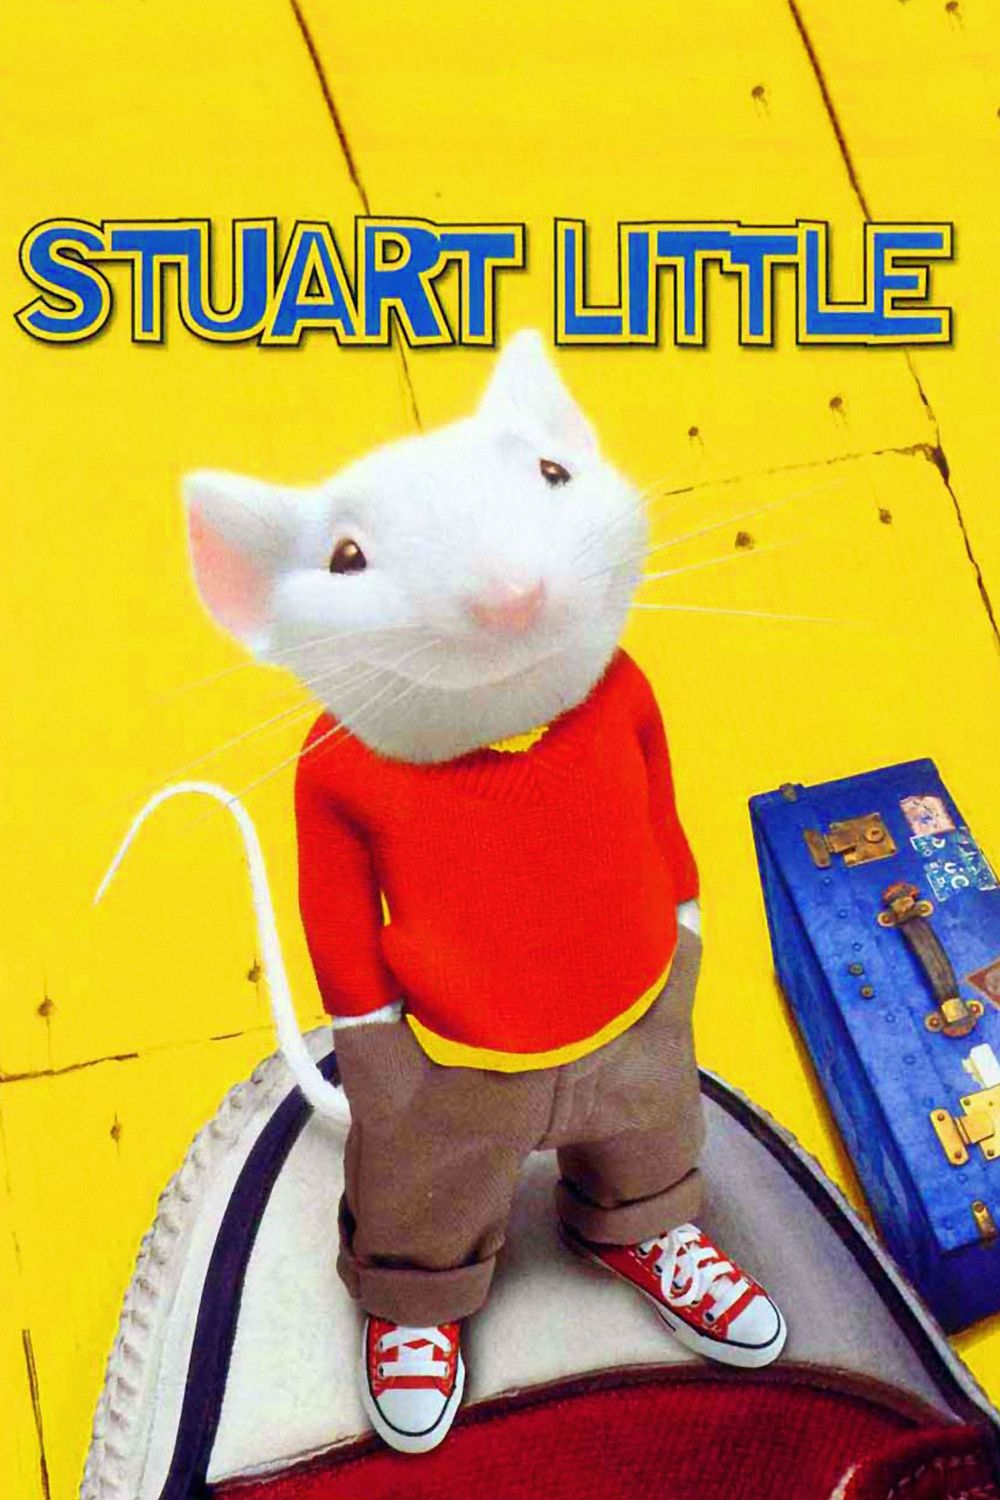 Little Stuart